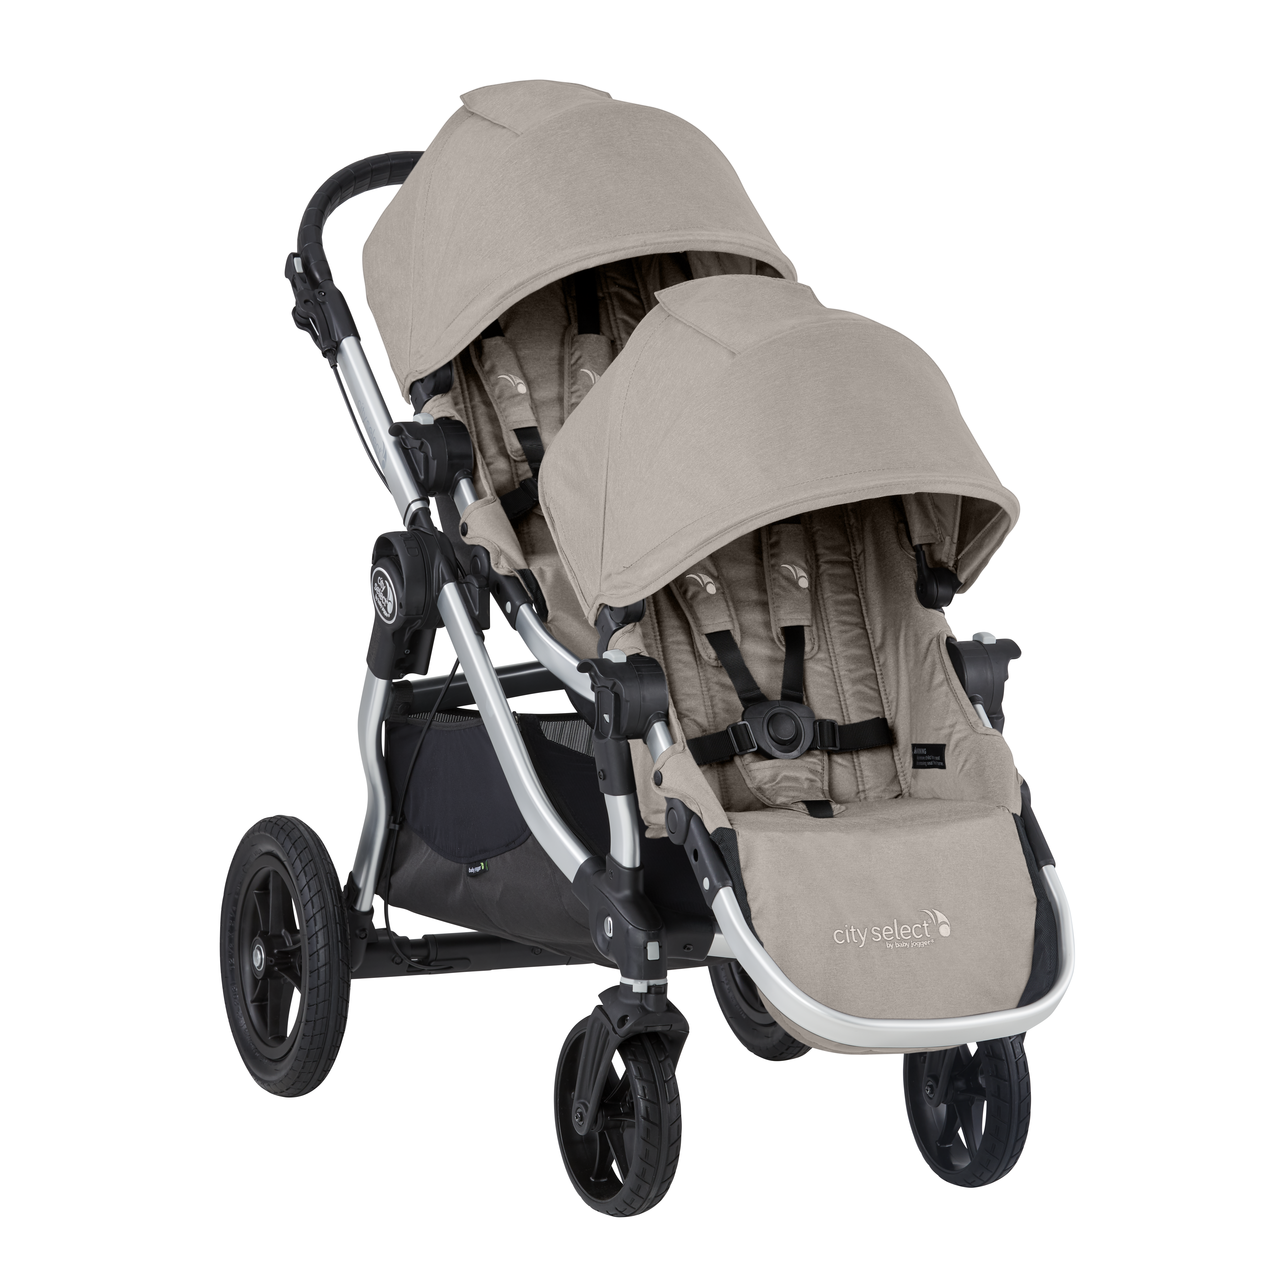 2019 Baby Jogger City Select Double Stroller Paloma Beige